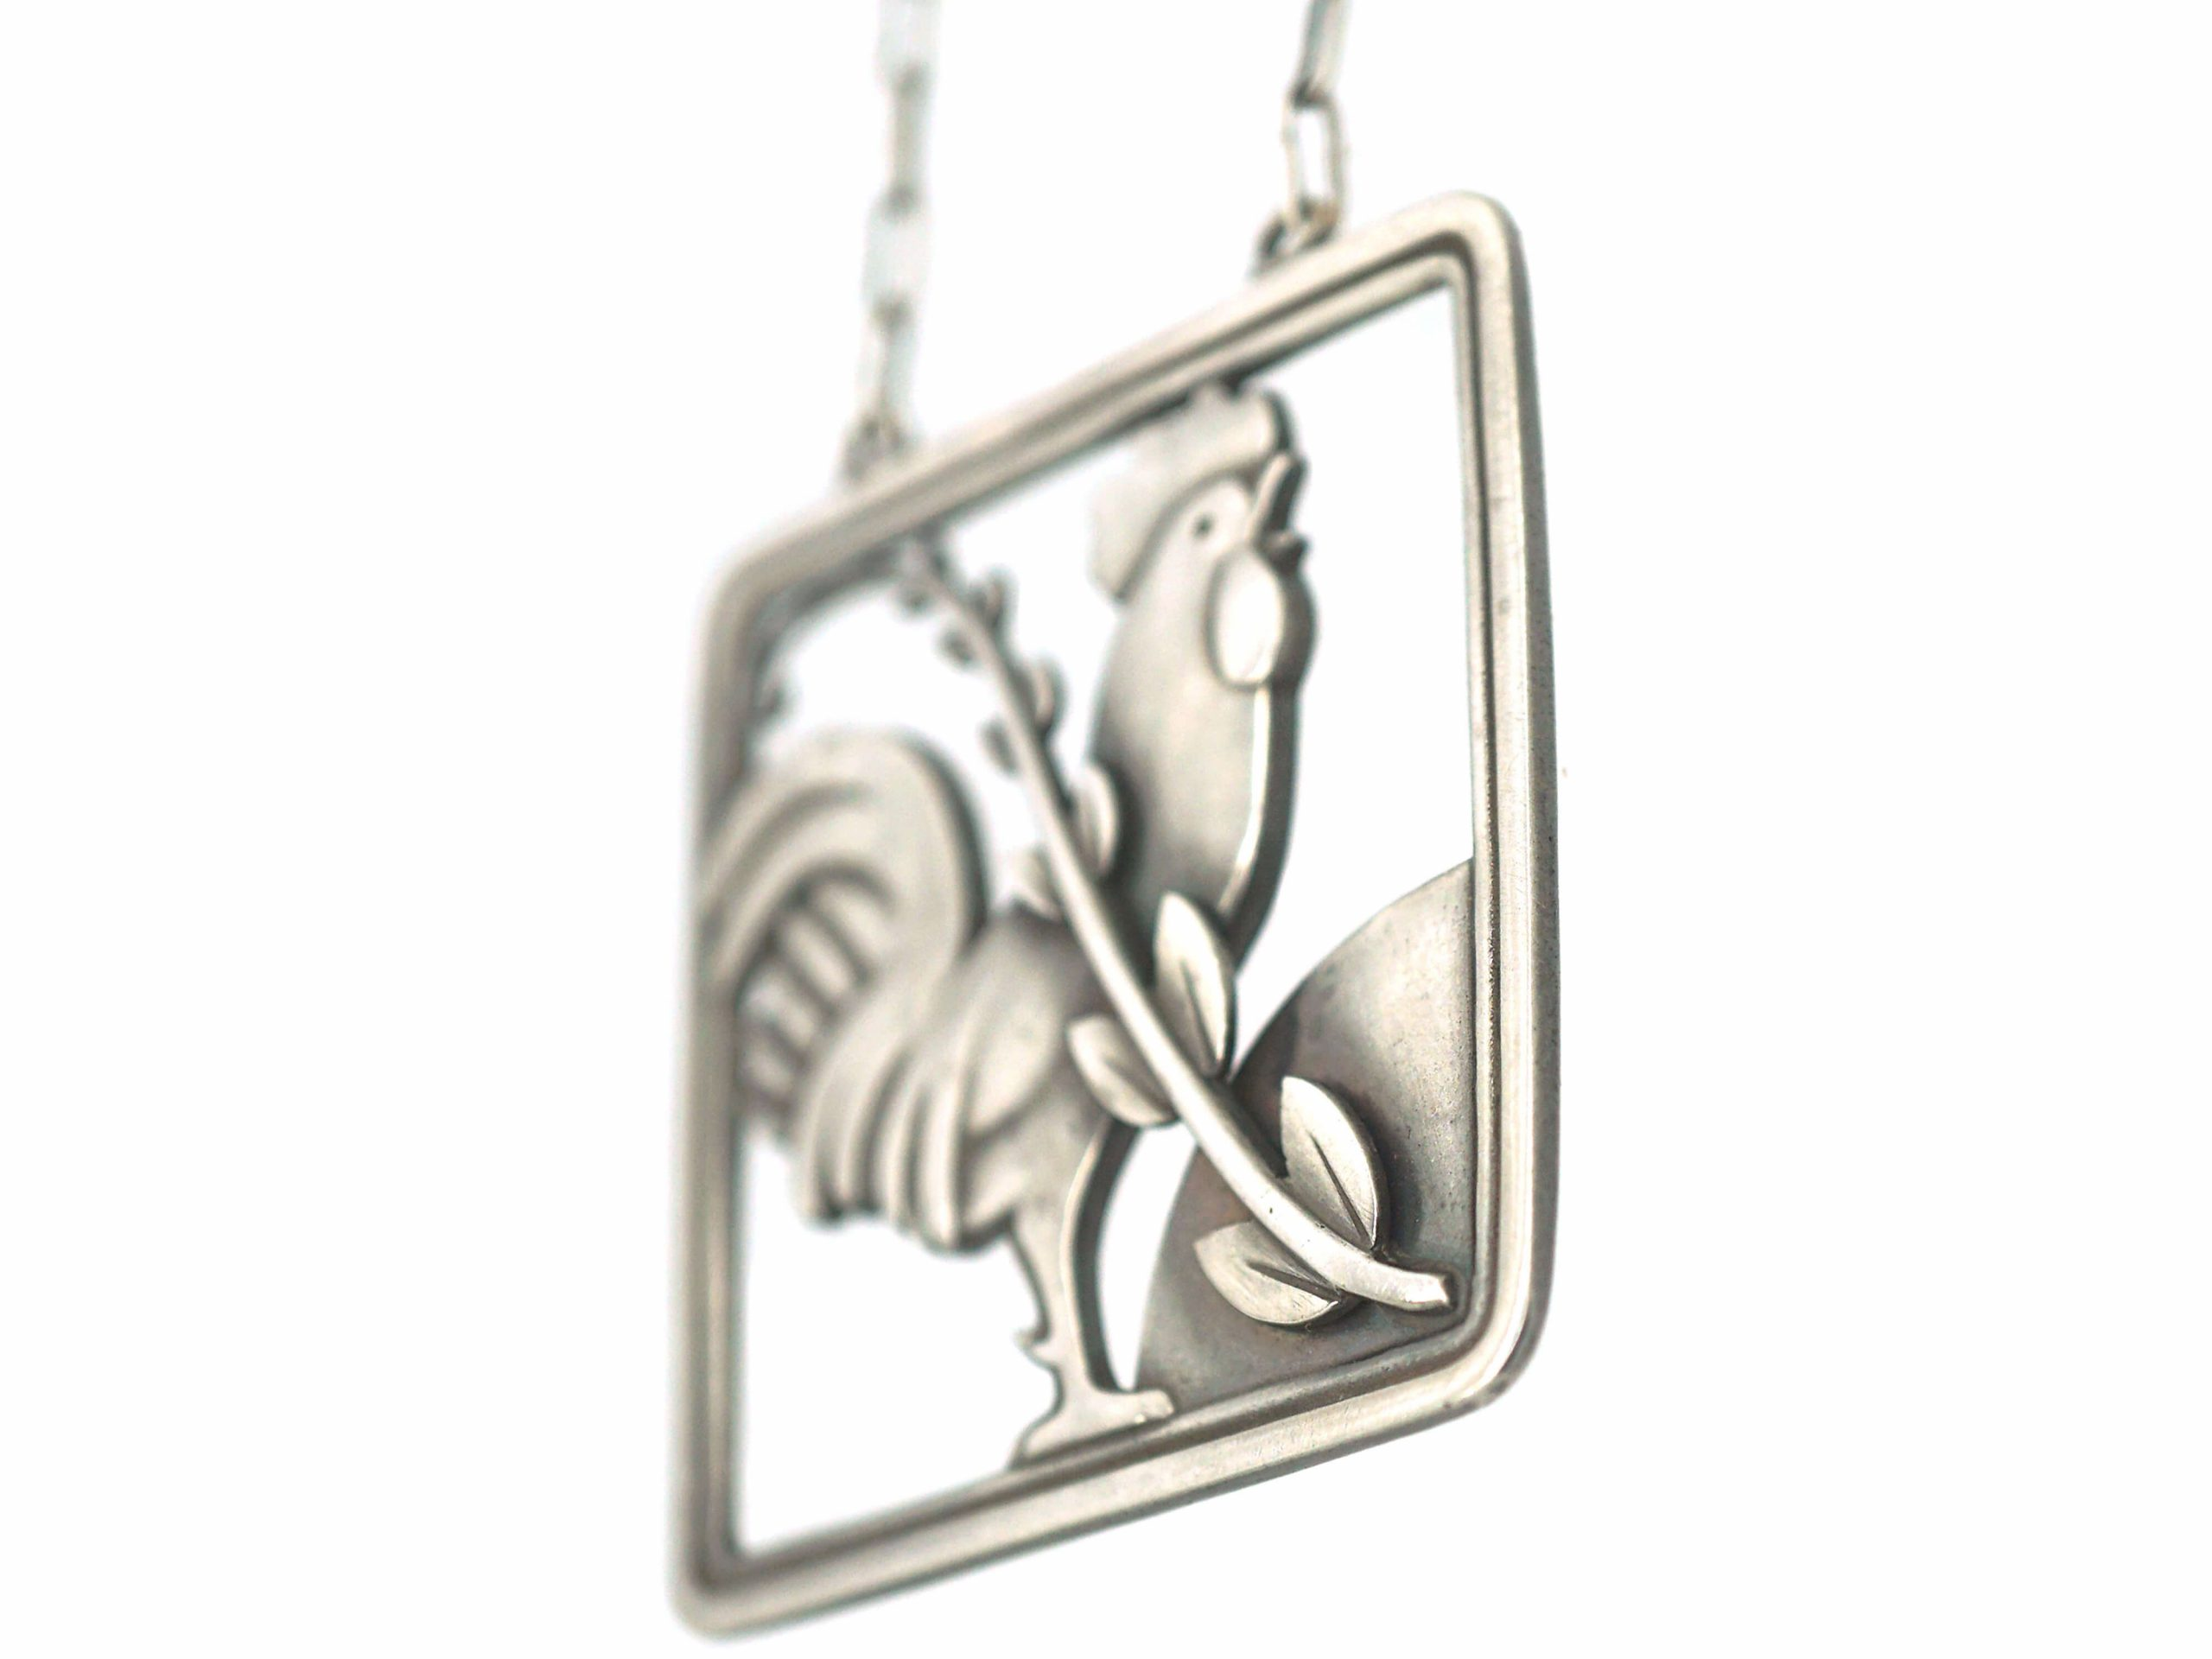 Silver Rooster Pendant on Chain by Arno Malinowski for Georg Jensen